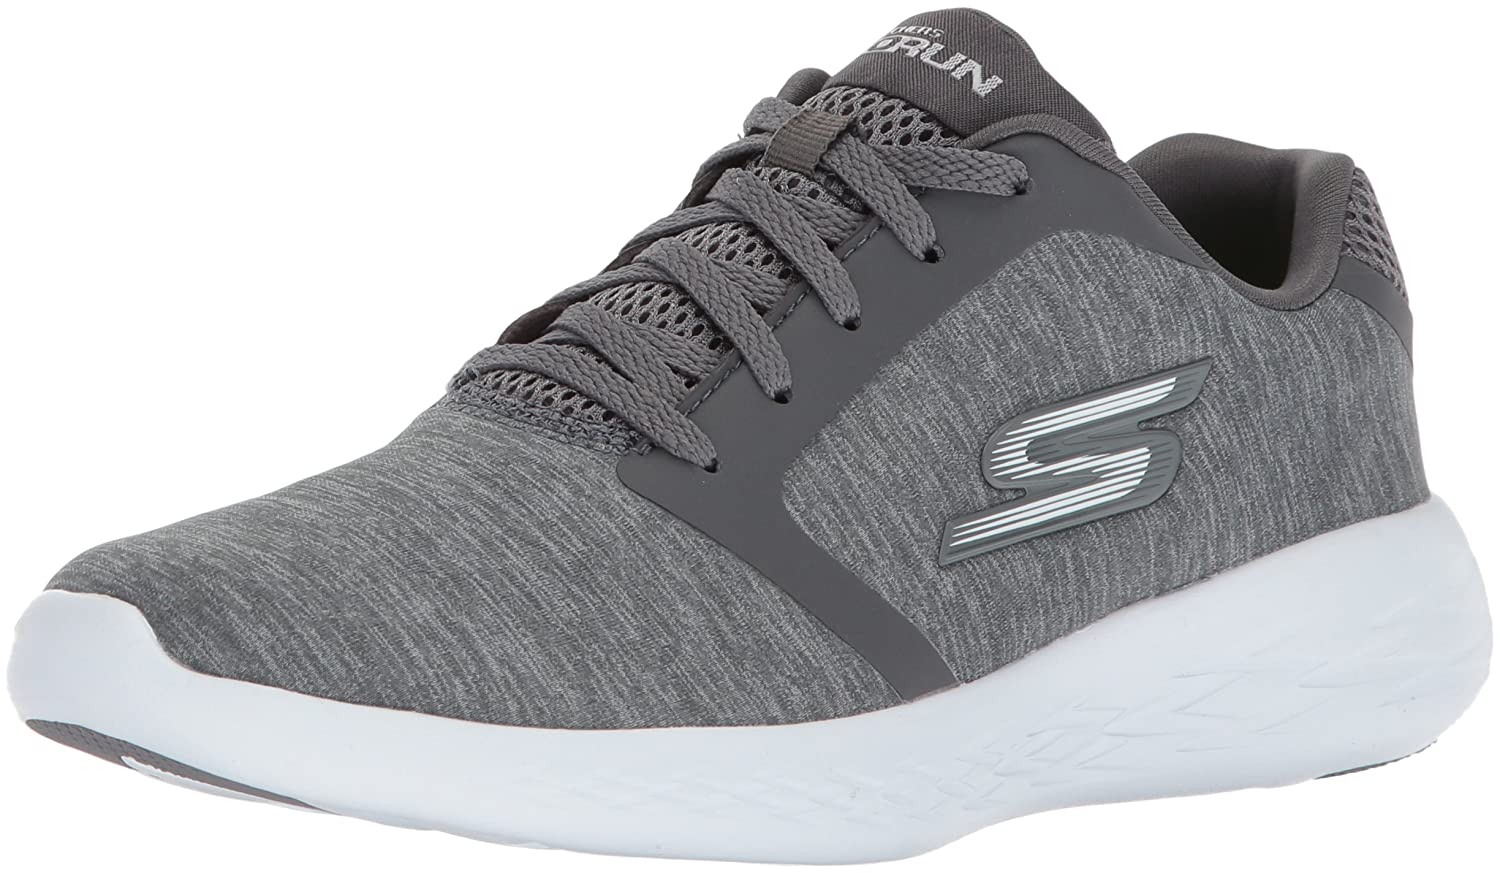 Skechers Go Run 600-Divert, Chaussures de Fitness Femme Skechers Performance 15071